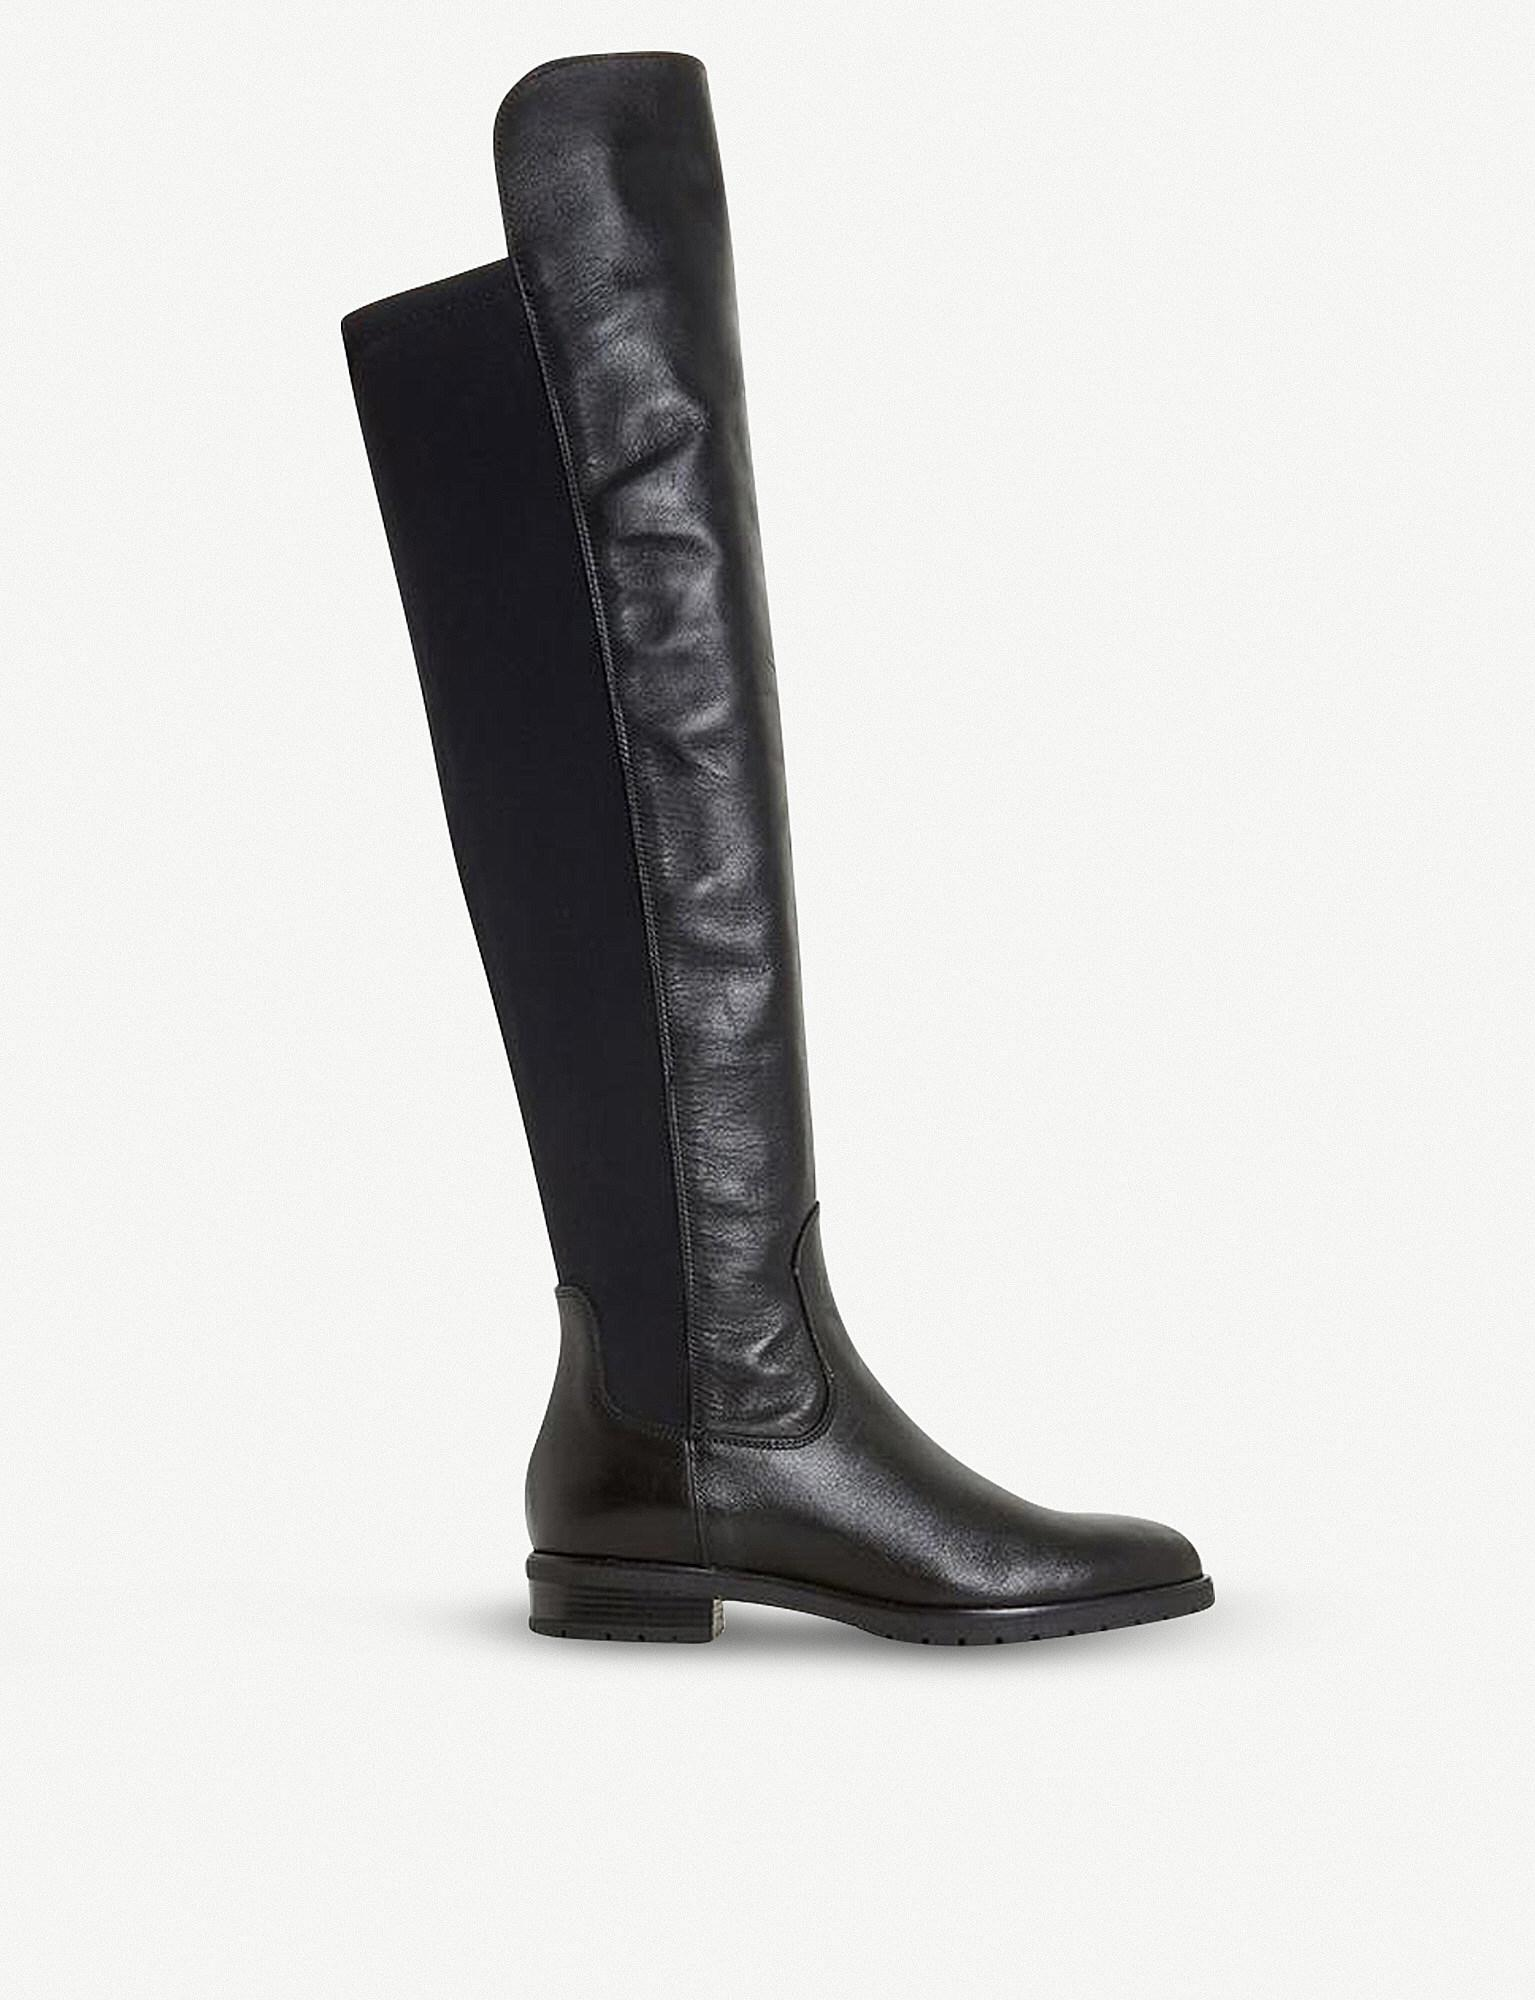 Dune Tarrin Over the Knee Boots, Leather